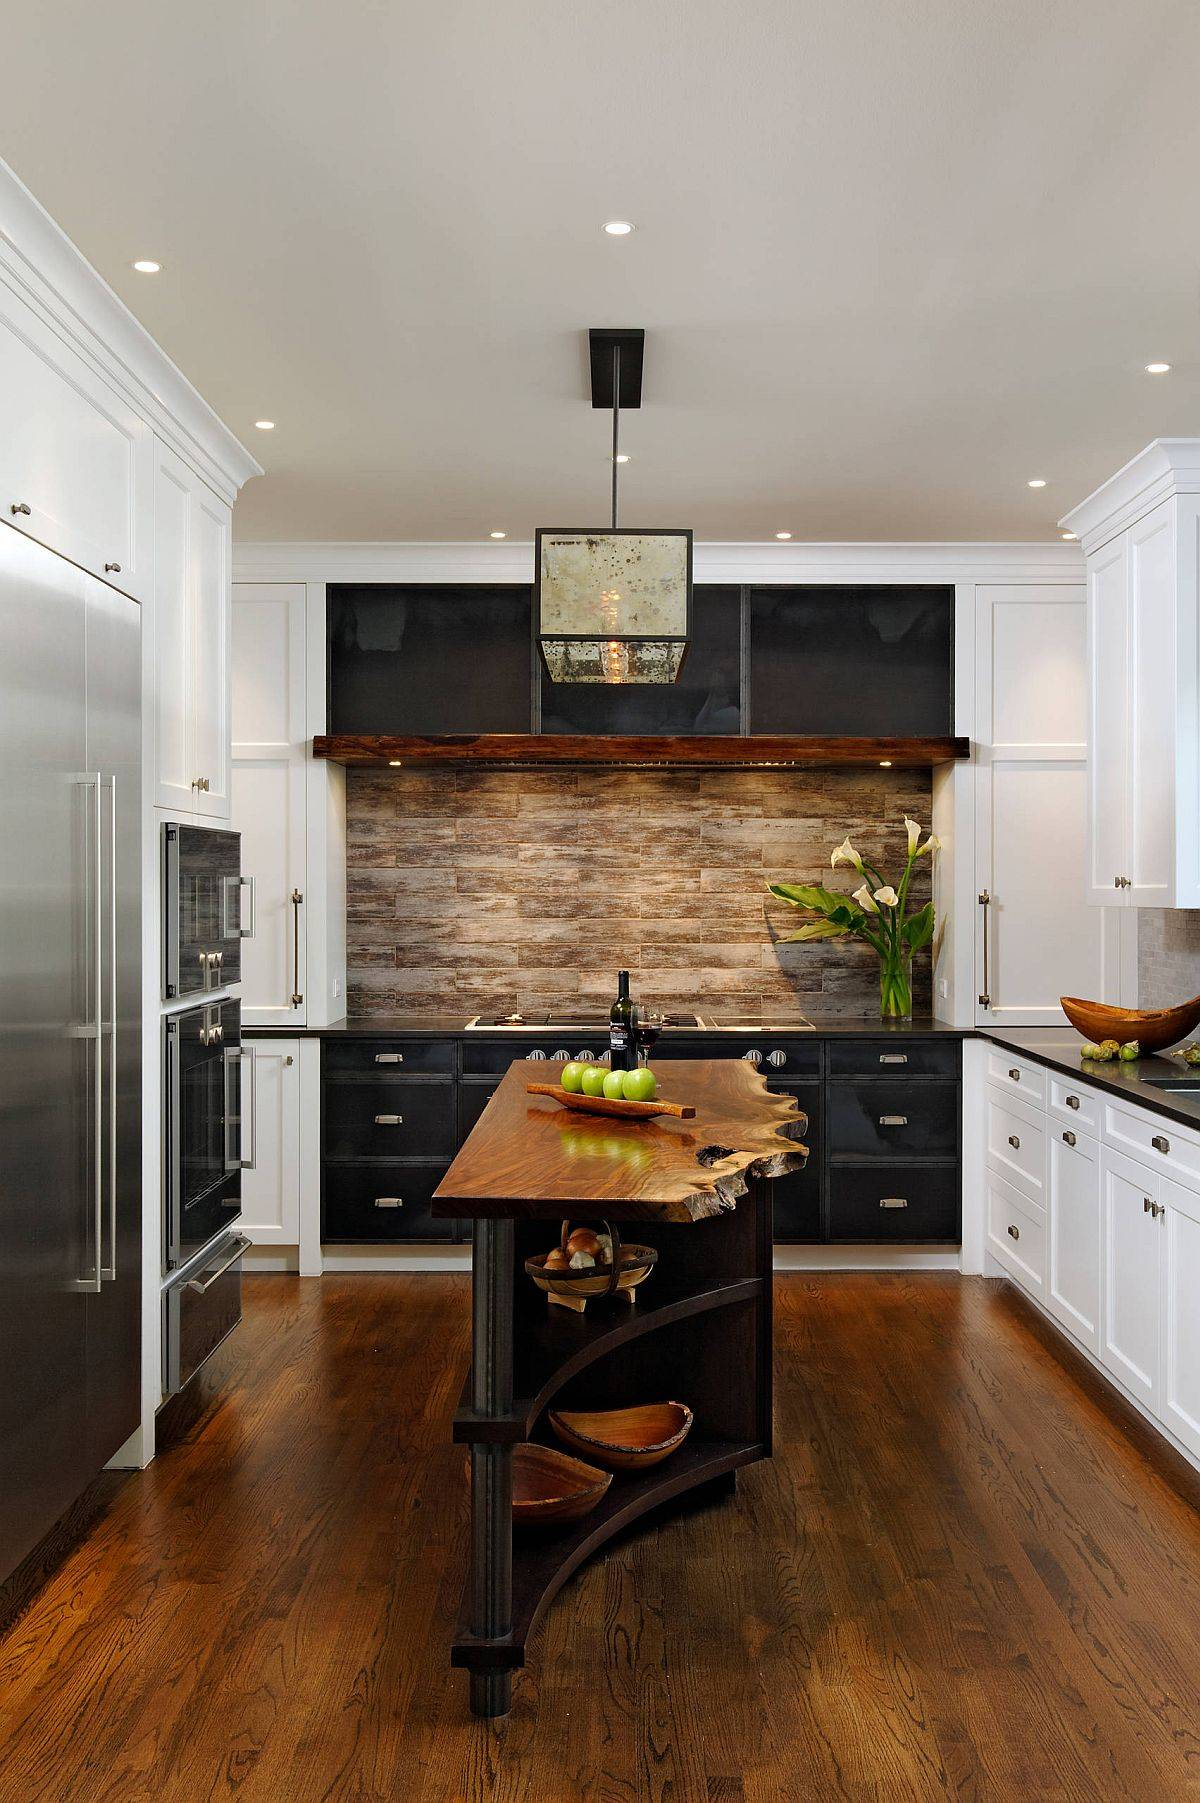 Beautiful-rustic-industrial-kitchen-with-a-central-island-that-features-a-beautiful-live-edge-wood-counter-95277